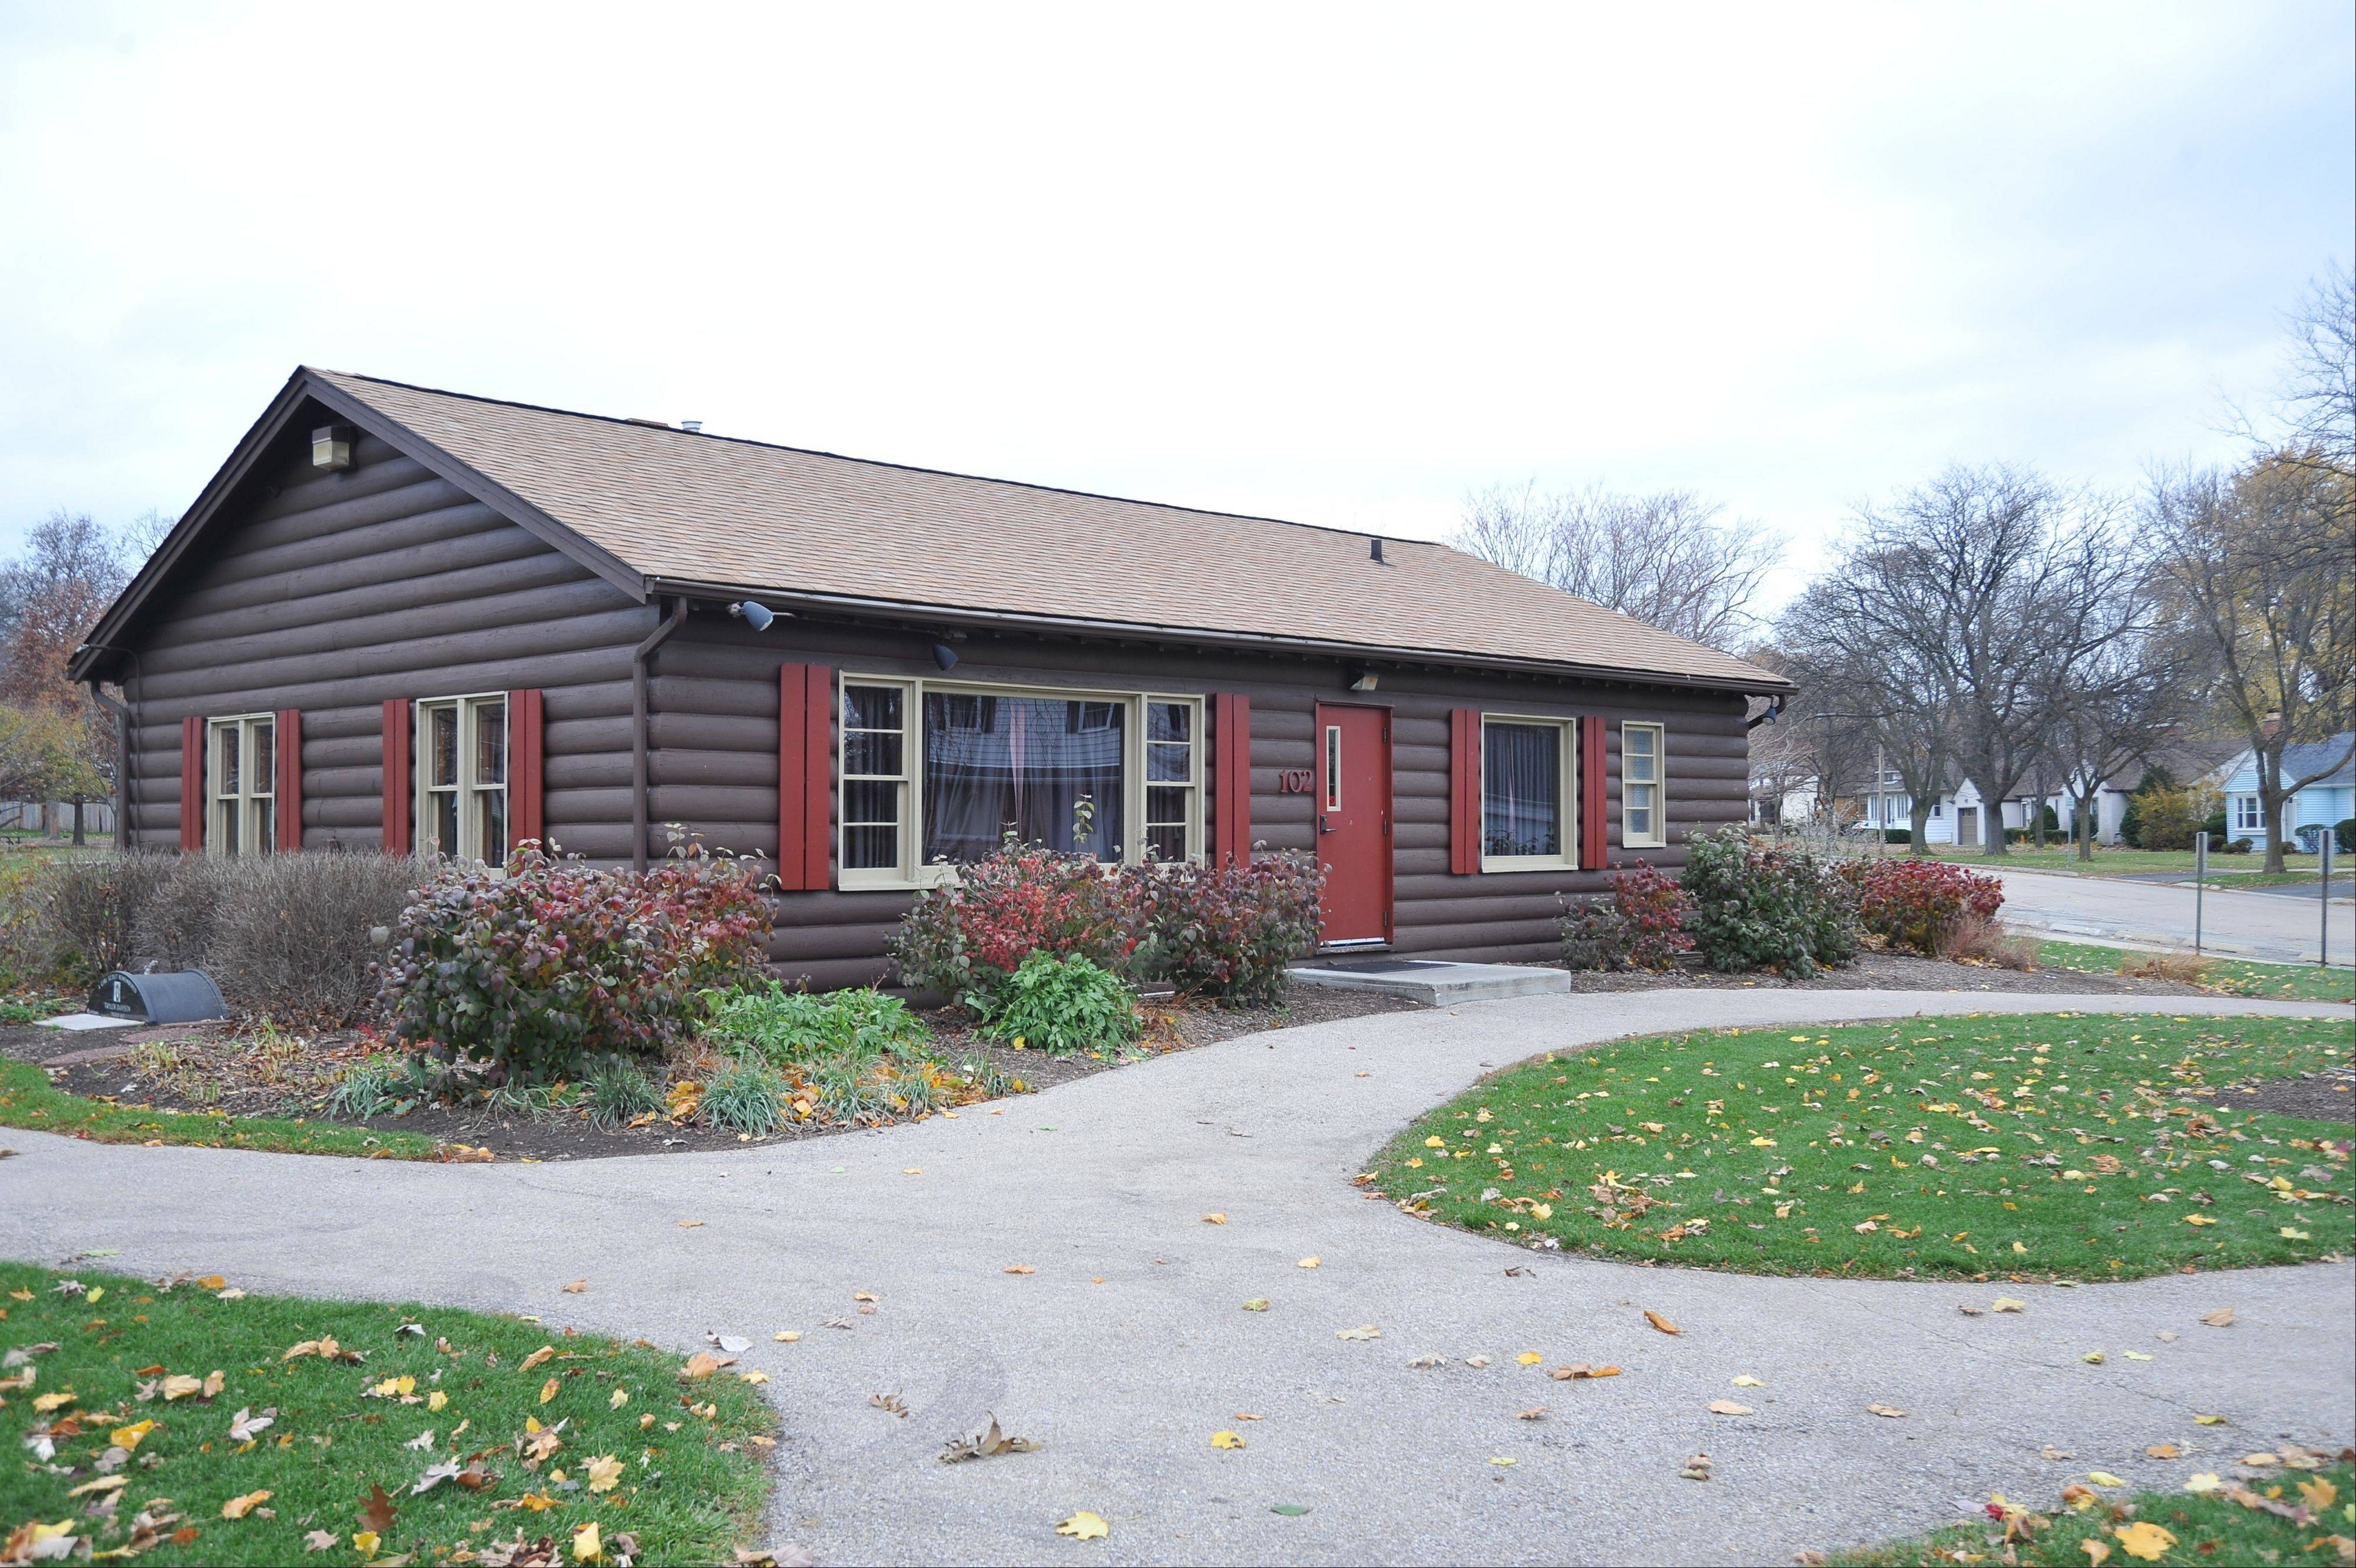 The Bartlett Park log cabin, 102 N. Eastern Ave., was completed in 1952 and served for many years as the village's community center. The Bartlett Park District now owns the building.